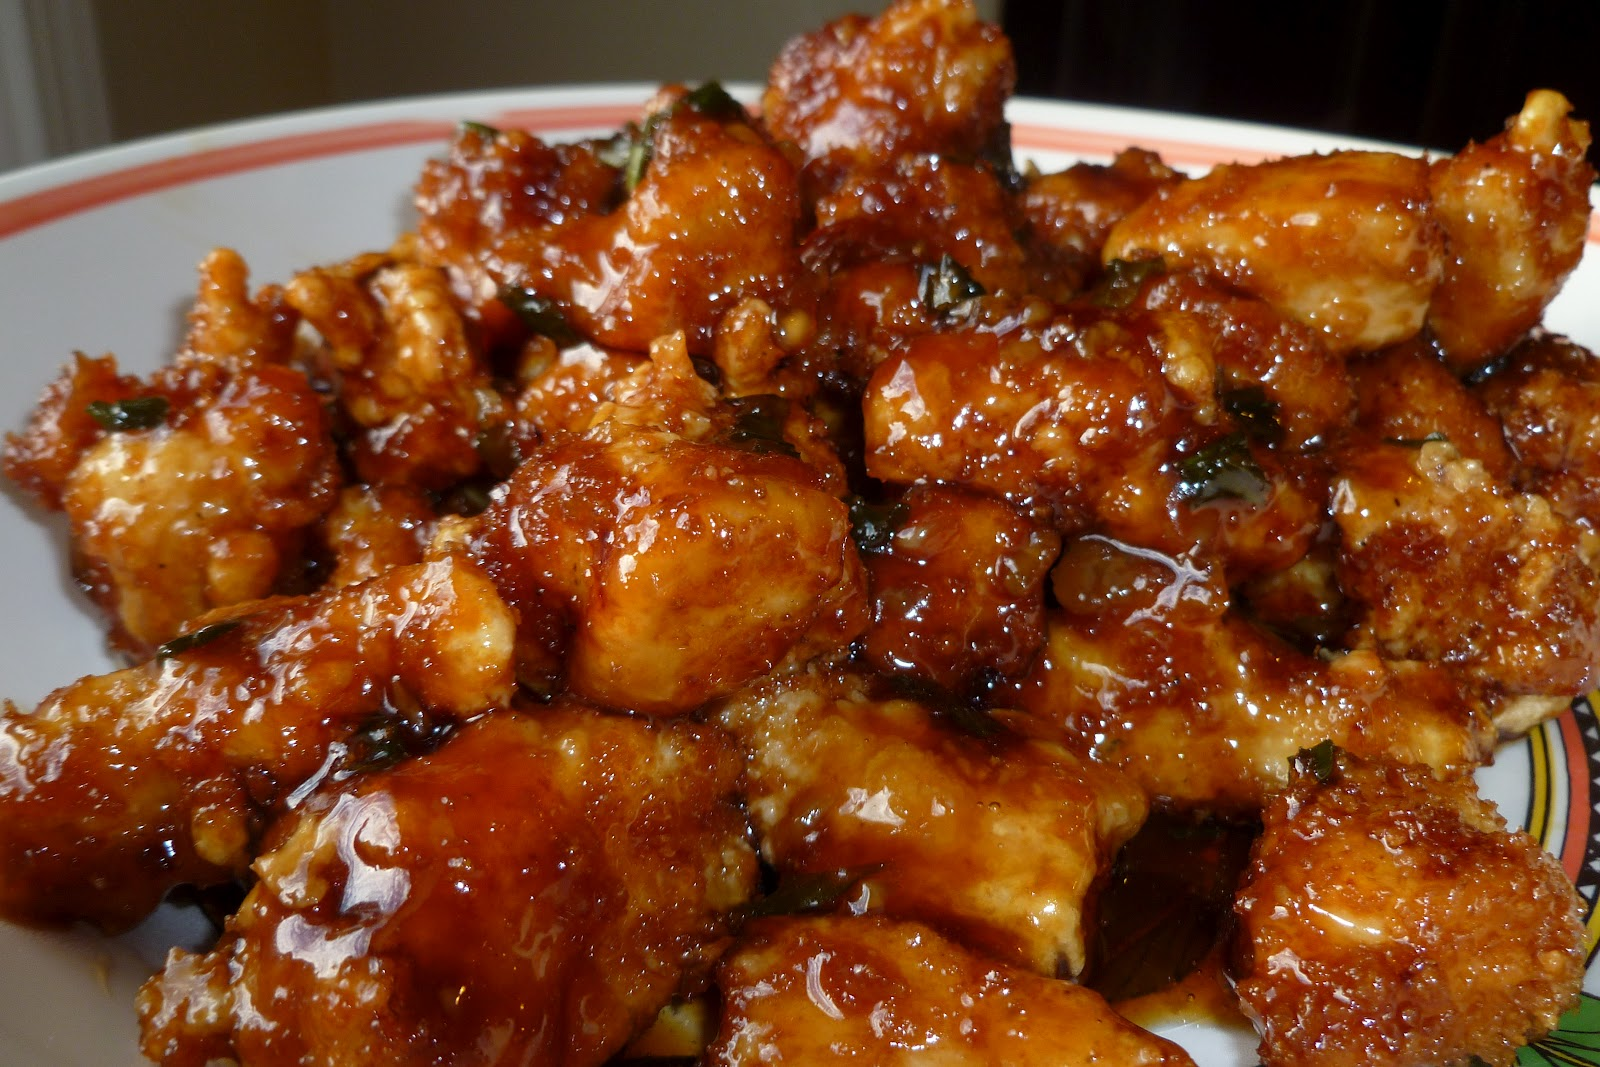 Orange Chicken - made October 7, 2012 from The Noshery